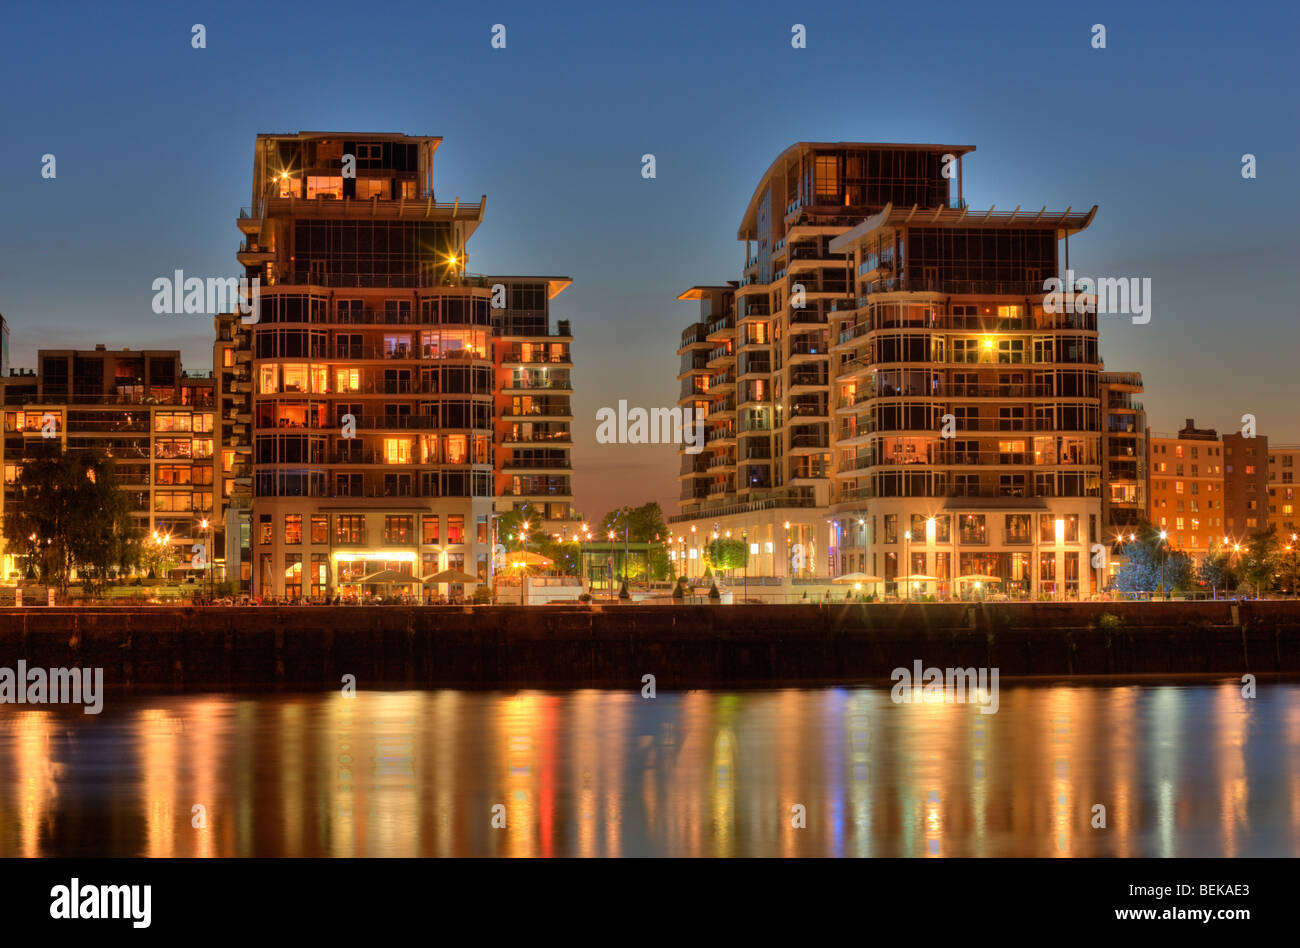 Imperial Wharf Development seen from across the Thames at sunset. - Stock Image